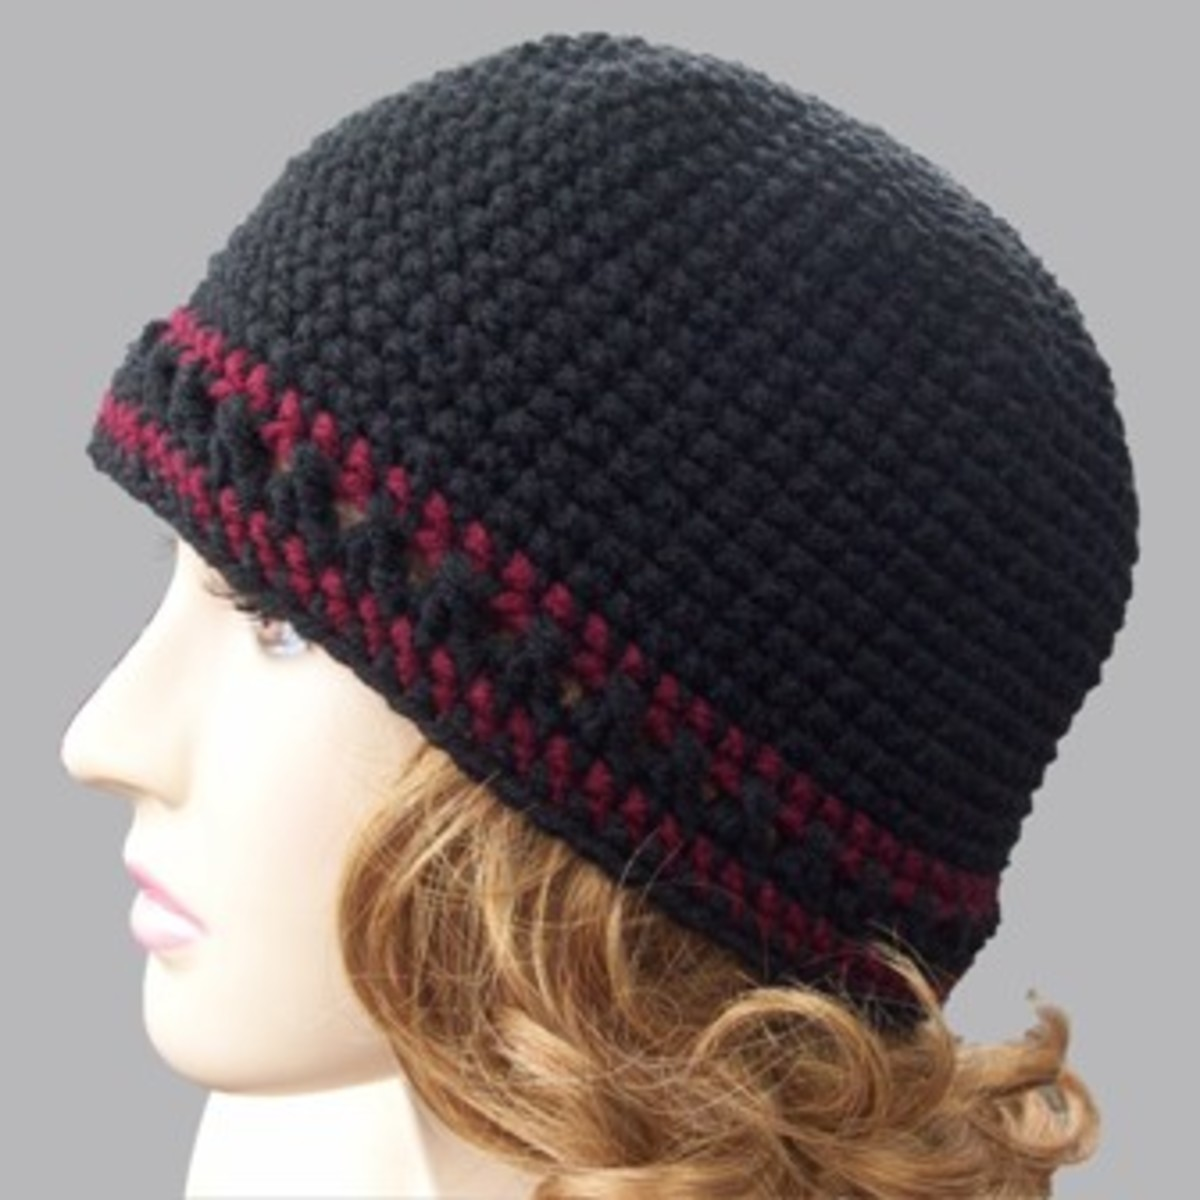 Single Crochet Beanie - Free Crochet Pattern by Rhelena